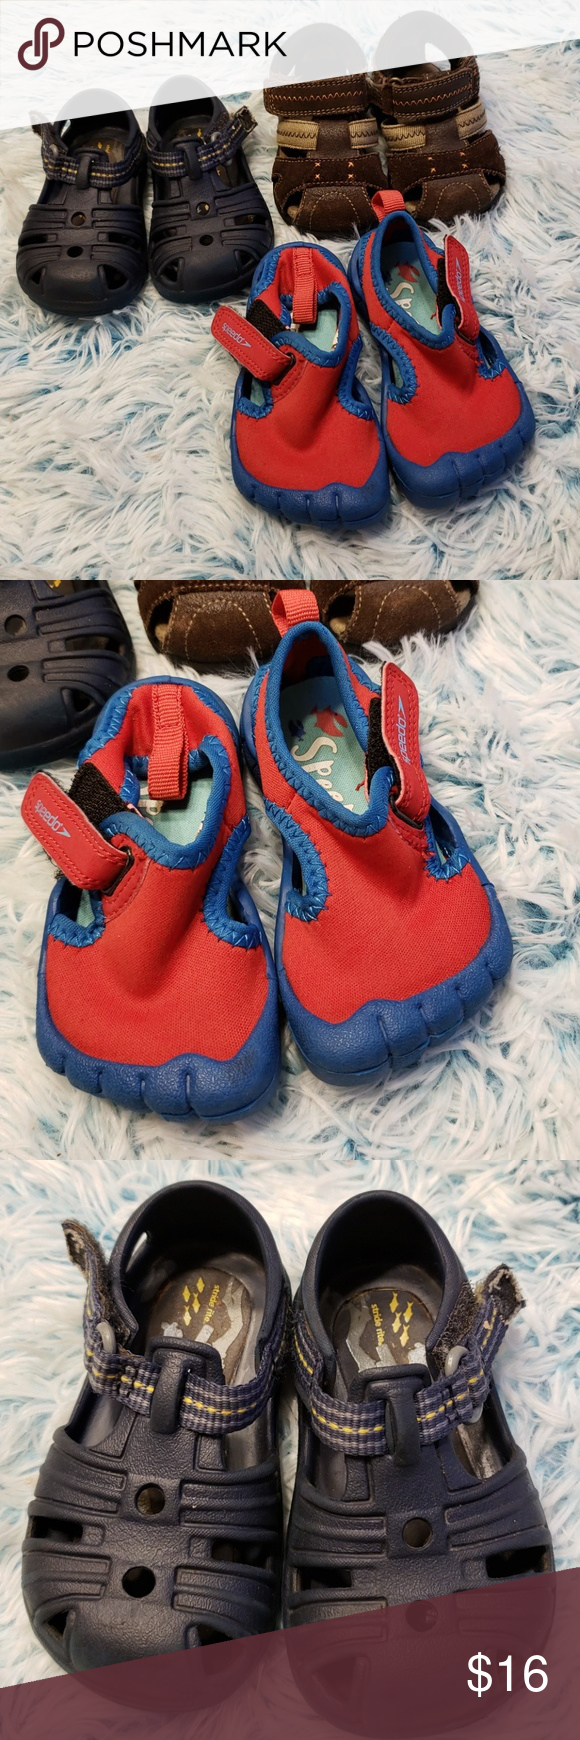 Baby Boy Size 4/5 Summer Shoes 3 pairs of summer shoes for ...